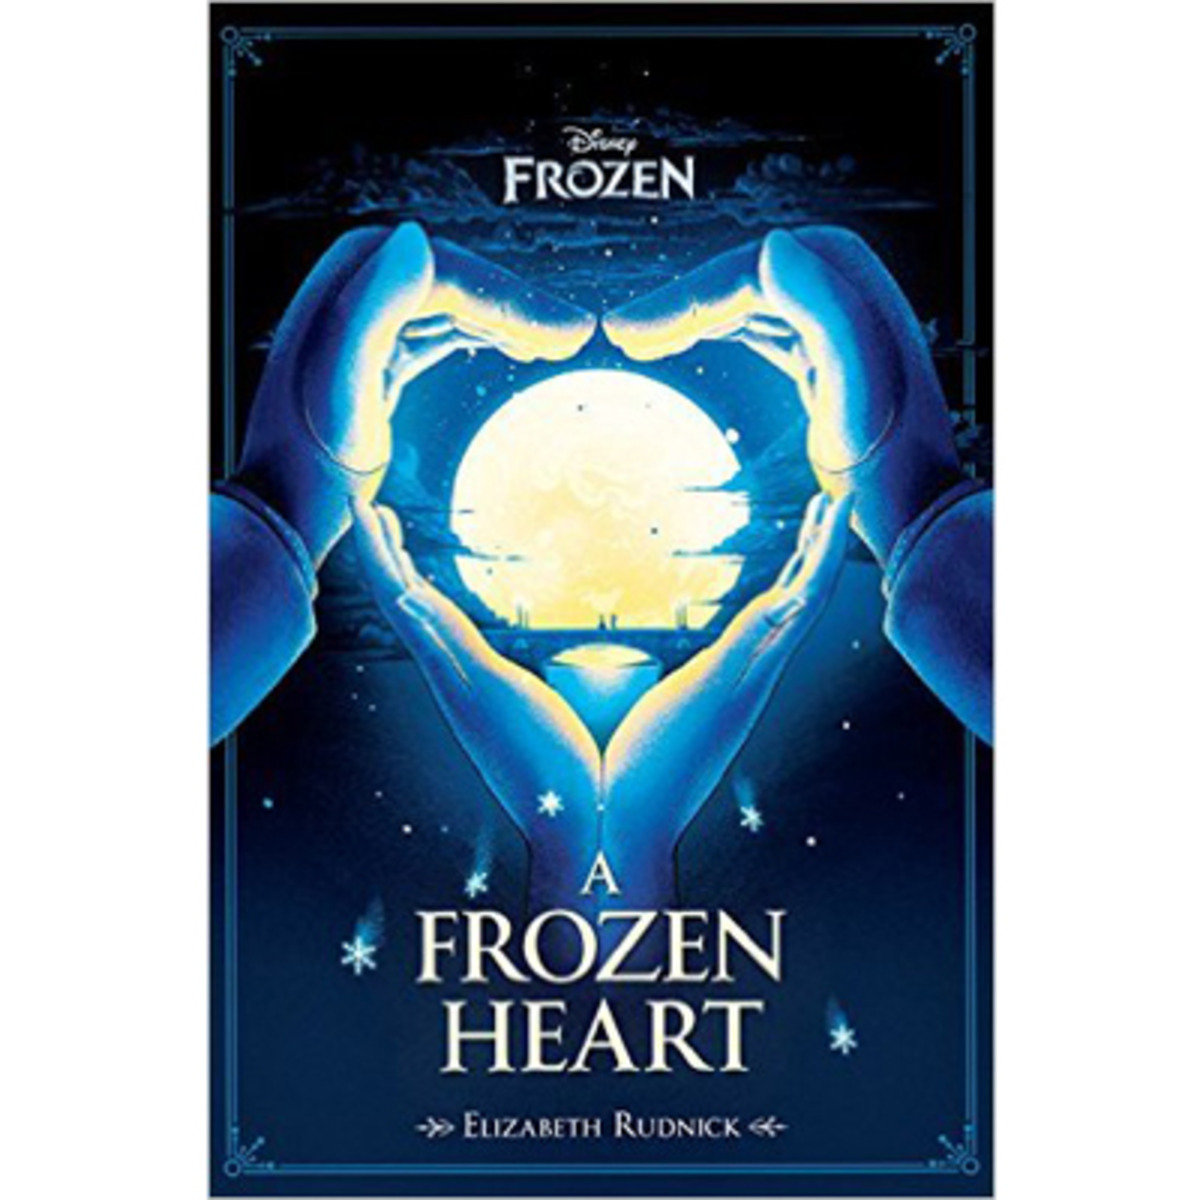 A FROZEN HEART 9781484730515